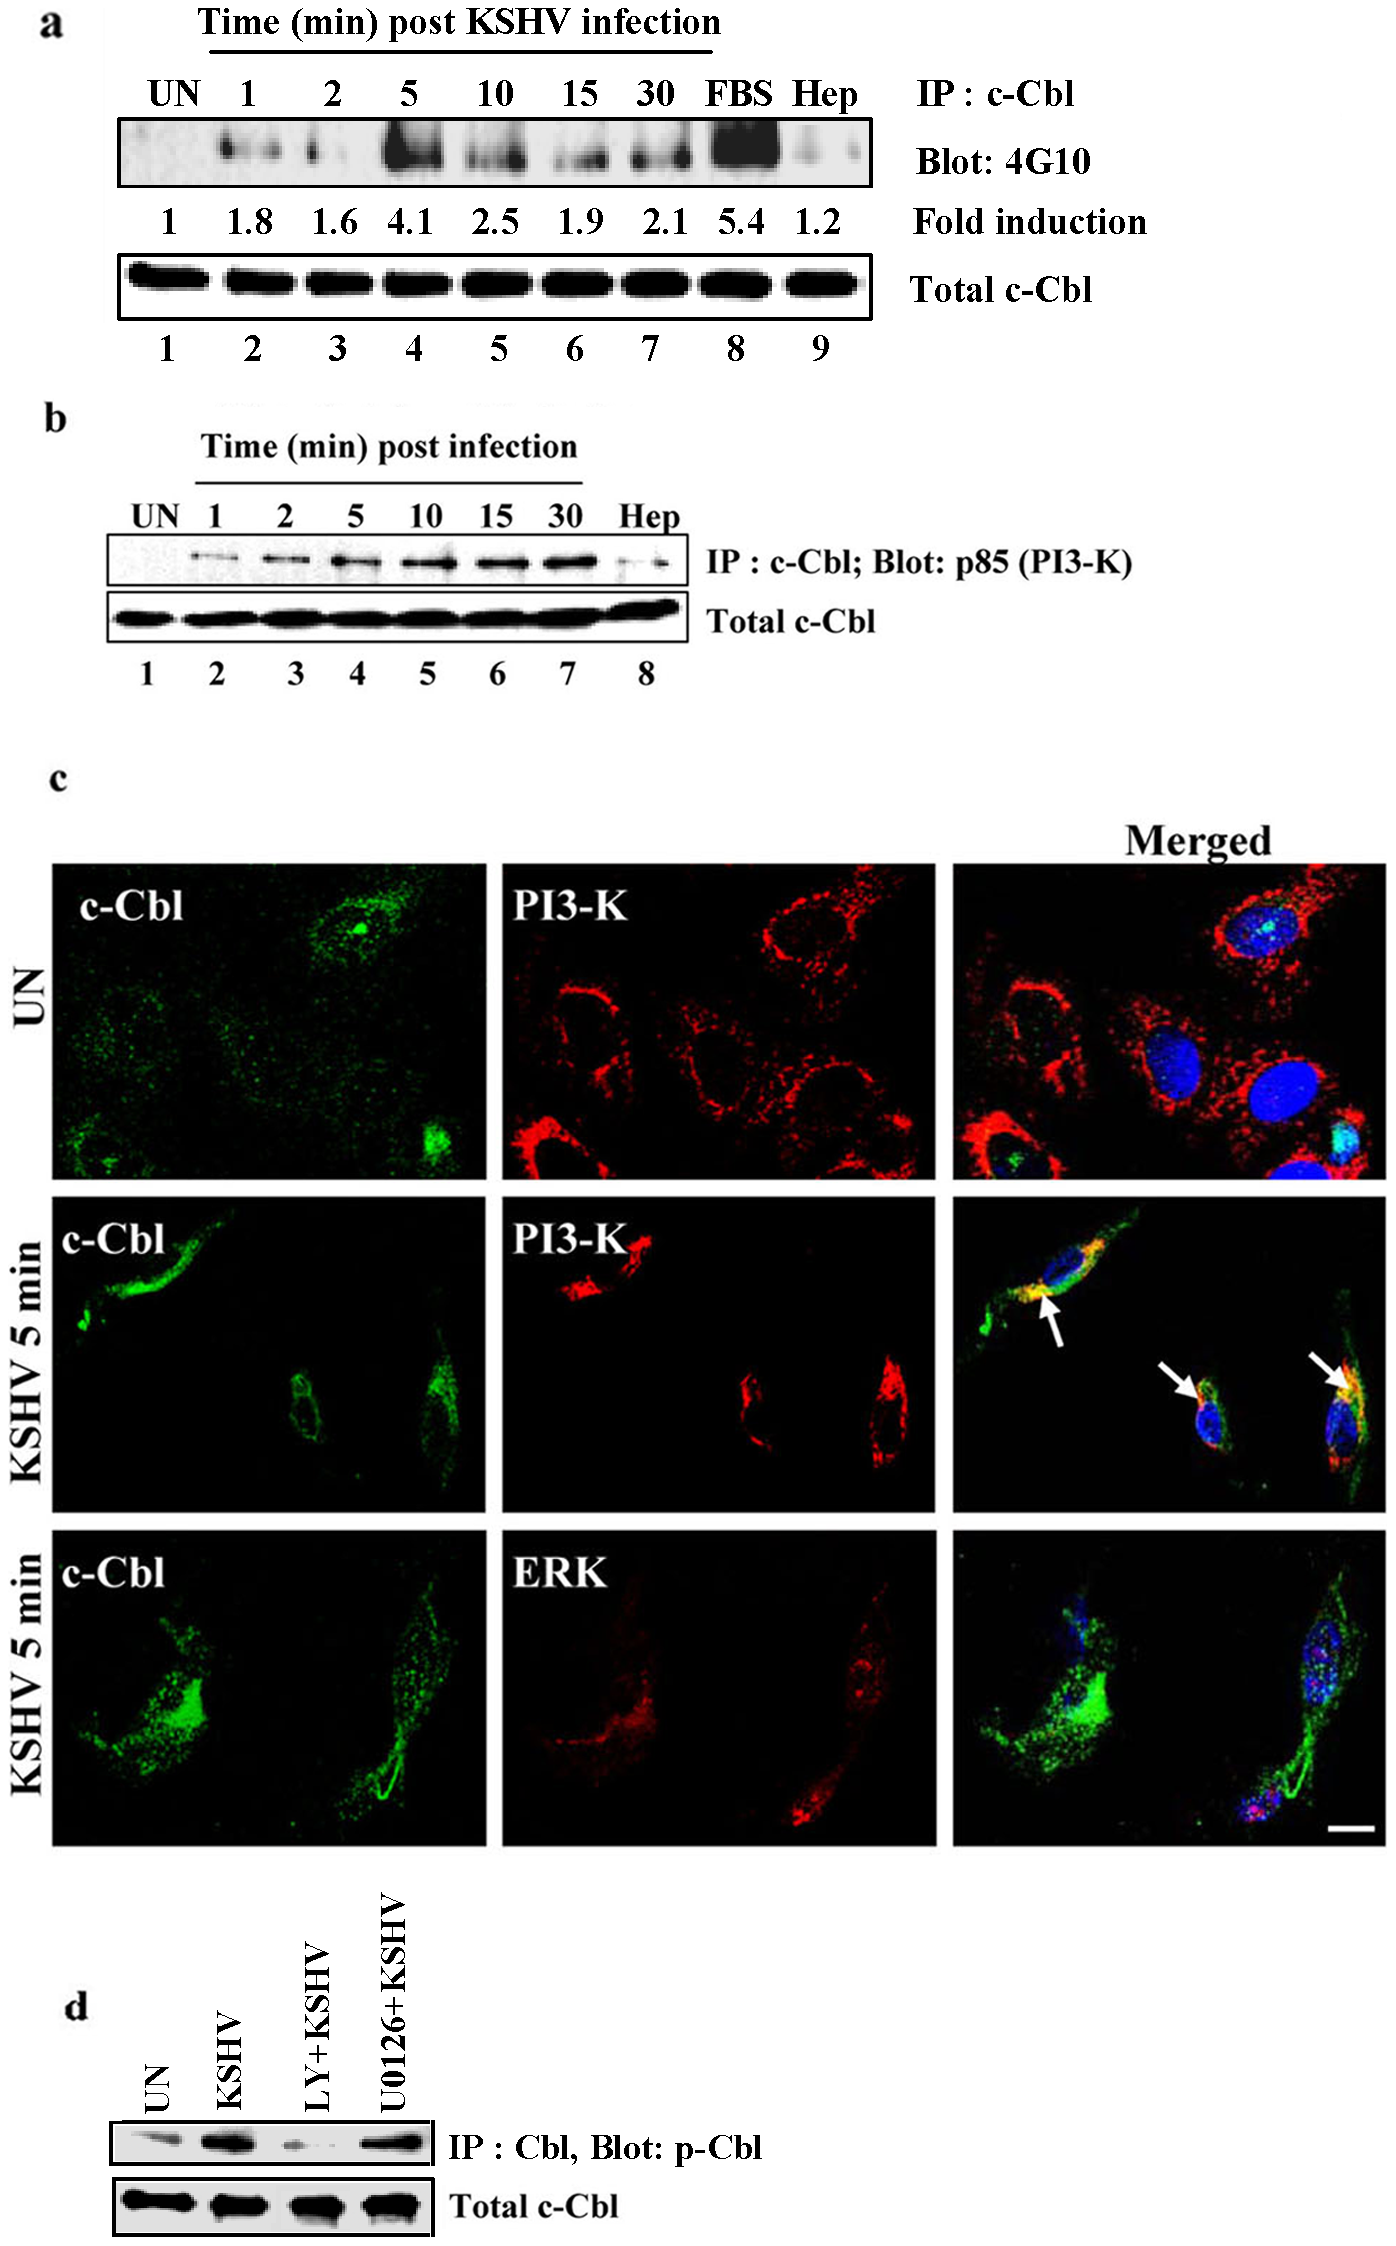 KSHV infection induces tyrosine phosphorylation of c-Cbl and association of c-Cbl with PI3-K.